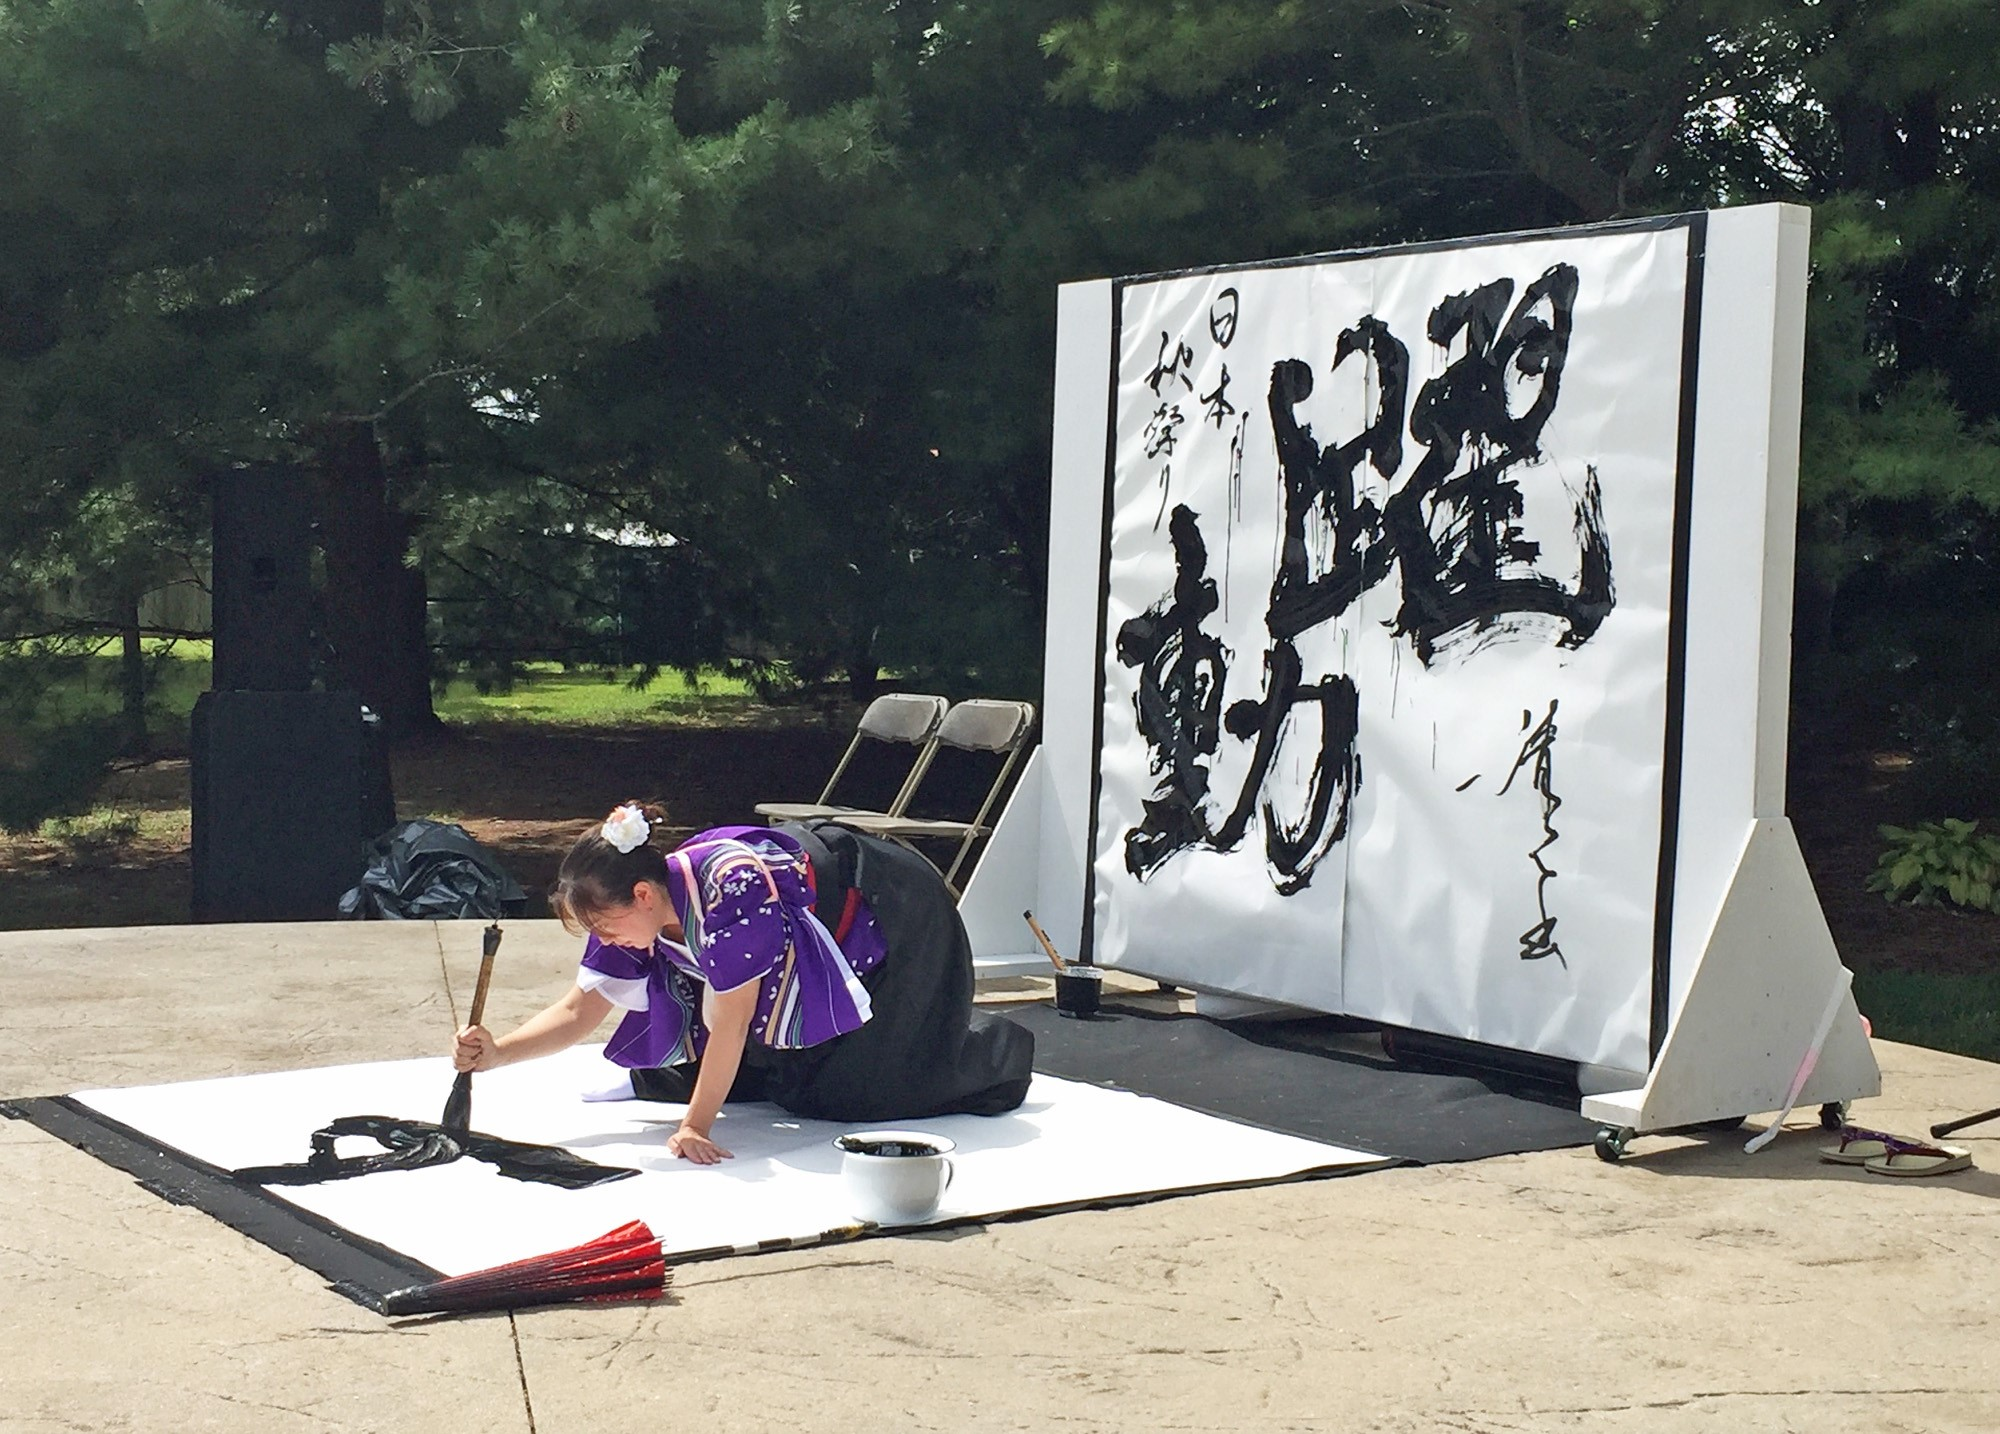 Special performance by Seiran Chiba, Japanese calligrapher